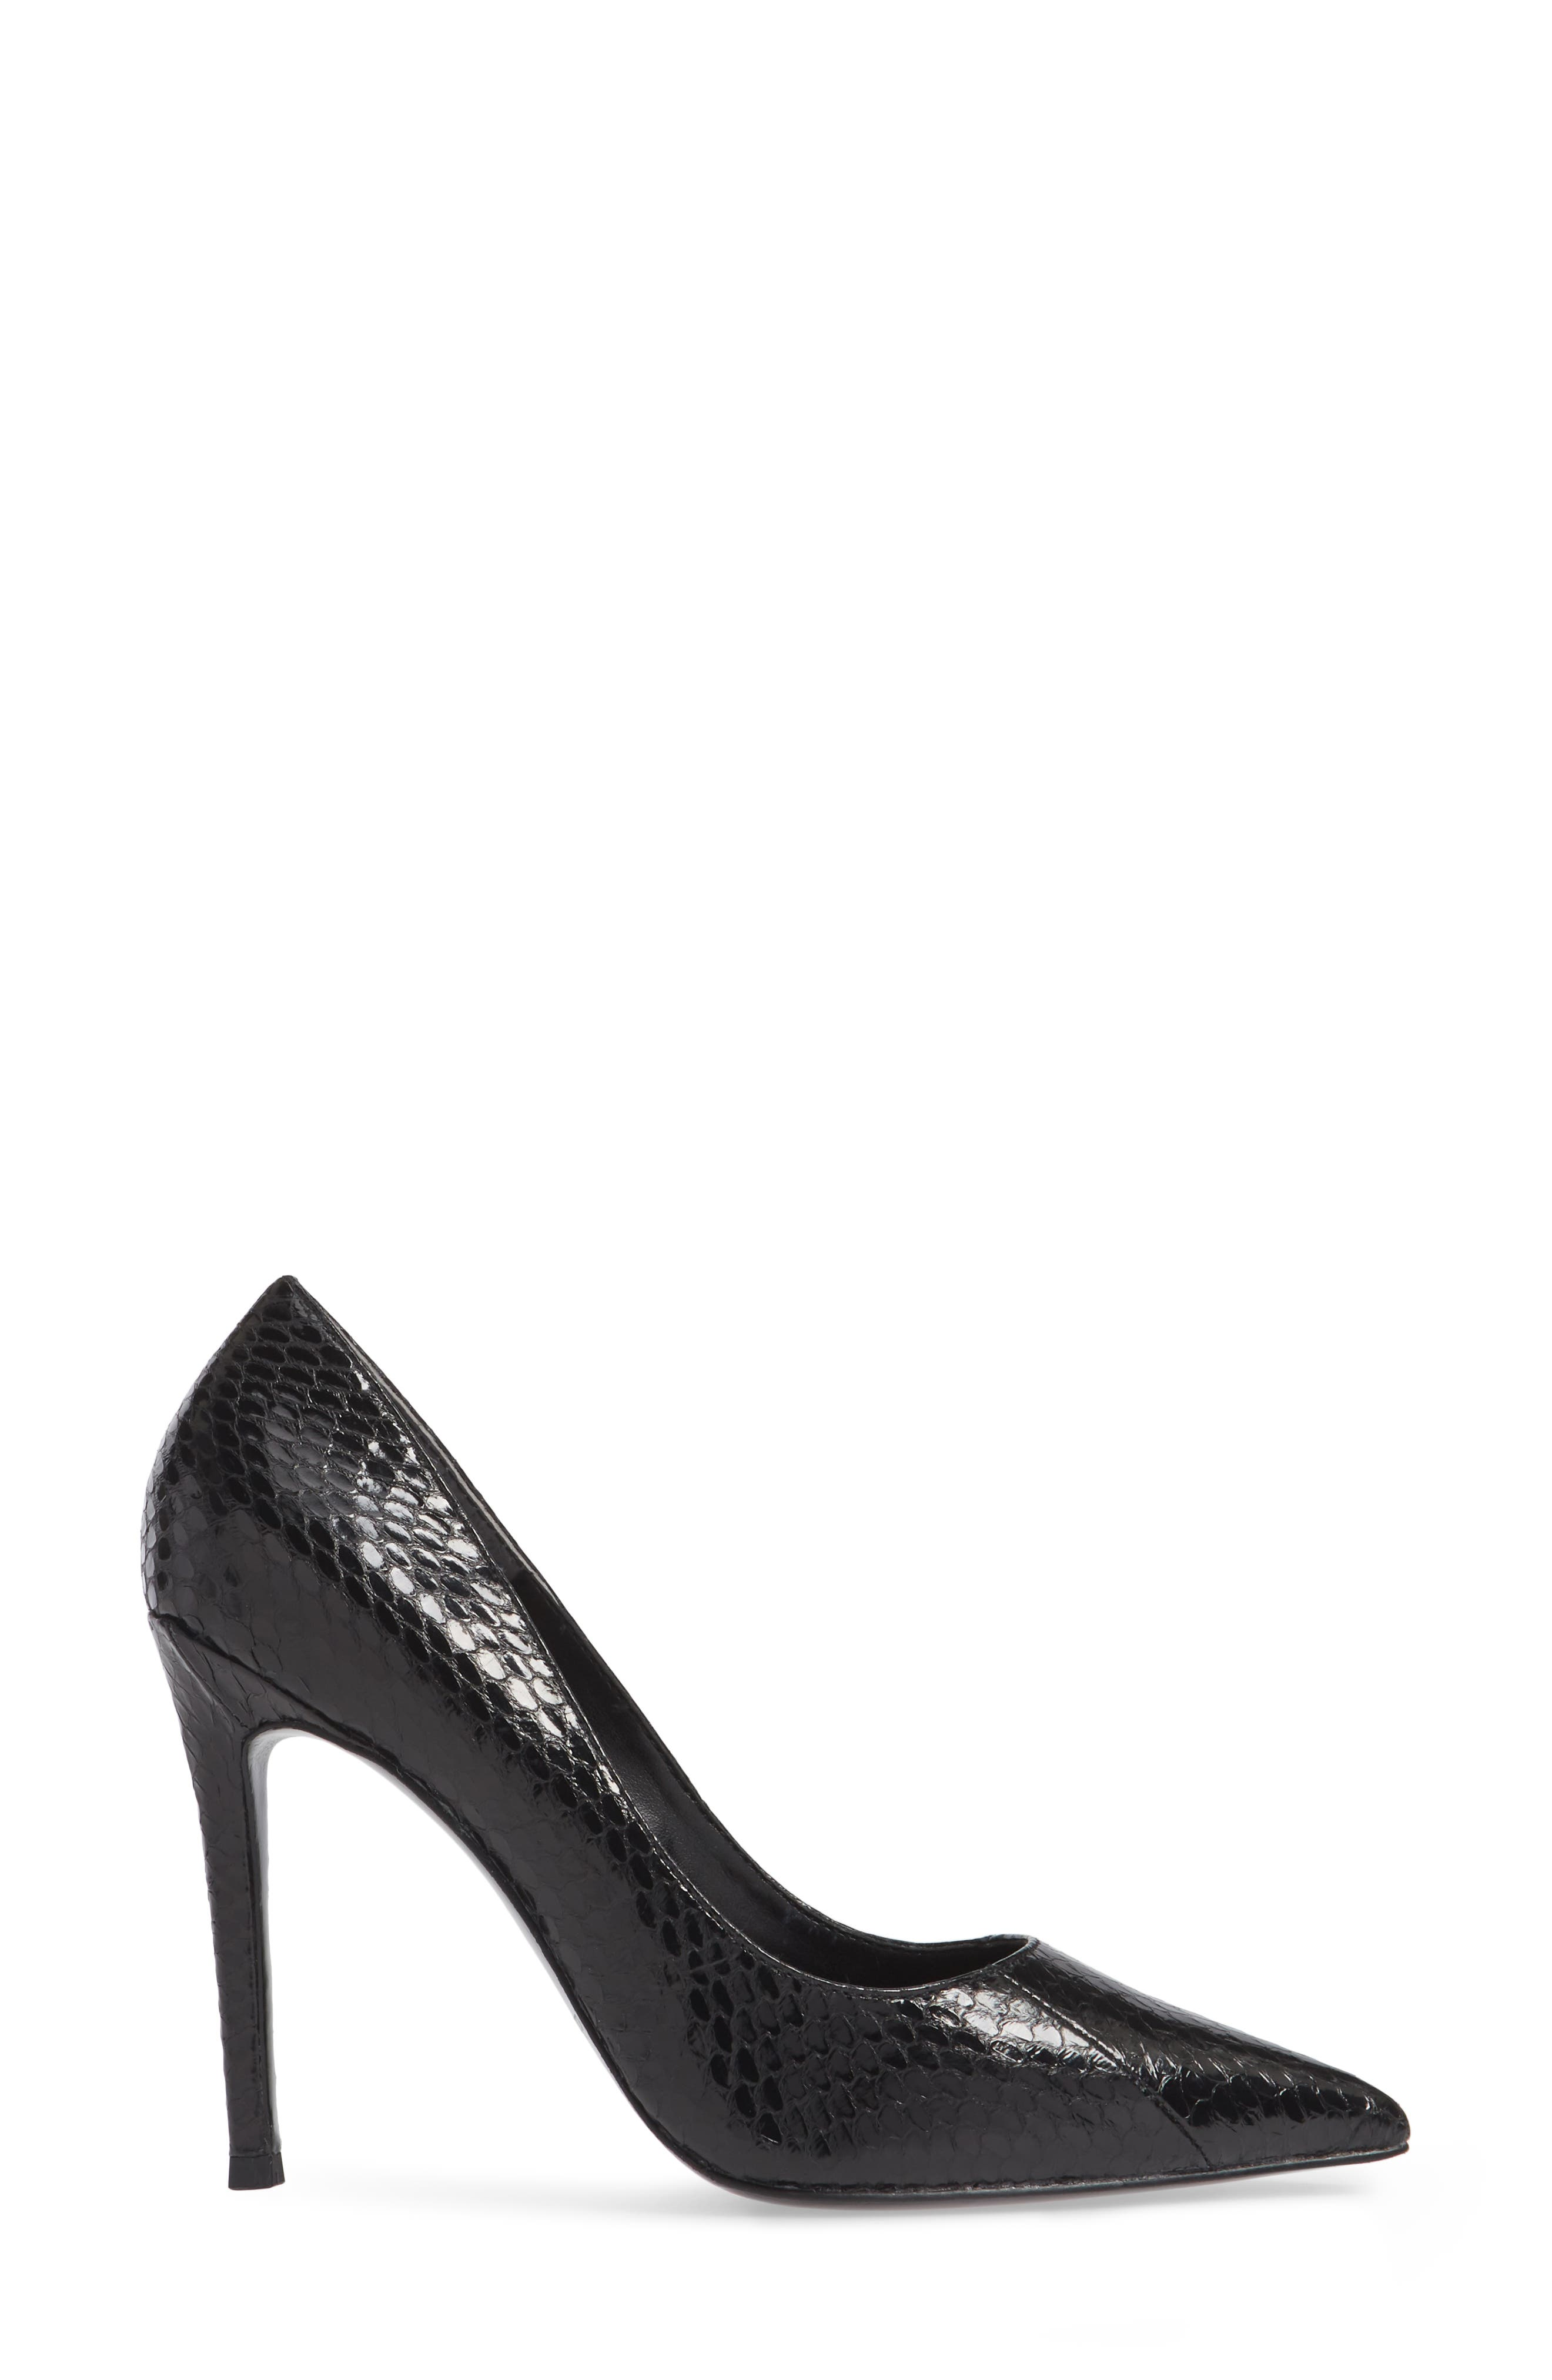 Calessi Pointy Toe Pump,                             Alternate thumbnail 3, color,                             BLACK SNAKE PRINT LEATHER